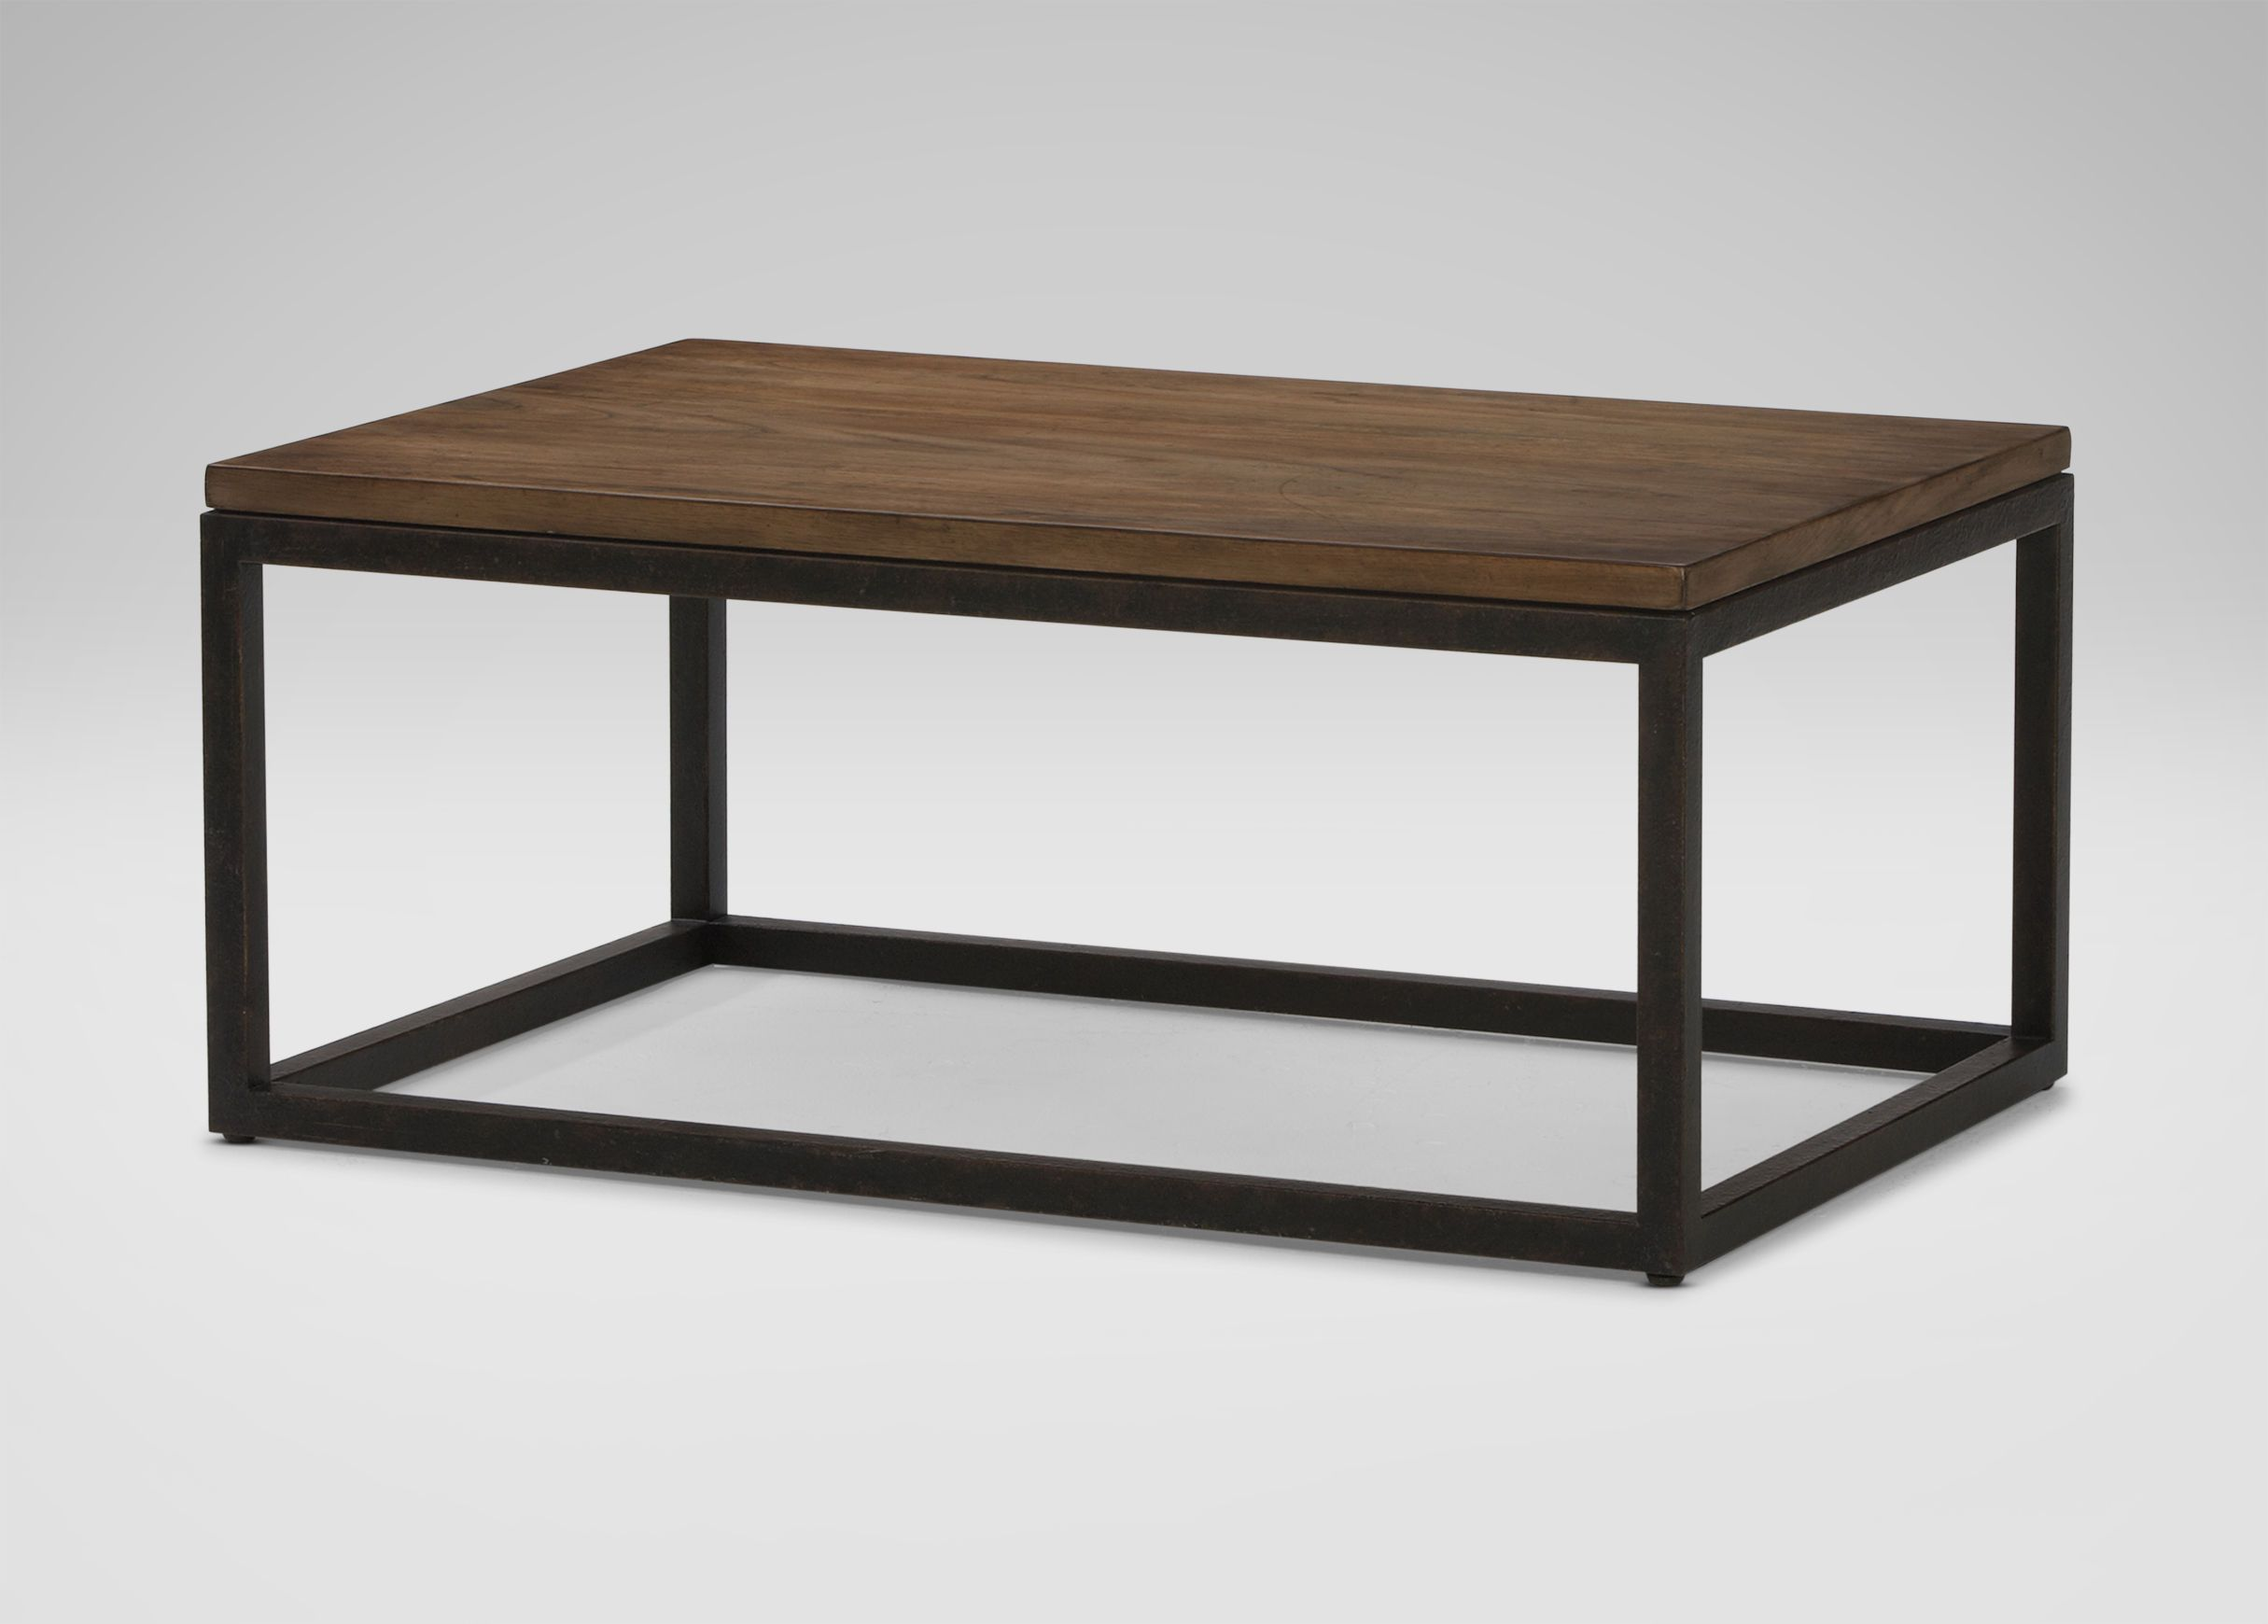 Meyer Small Coffee Table 40 x 1725 x 26 Living Room